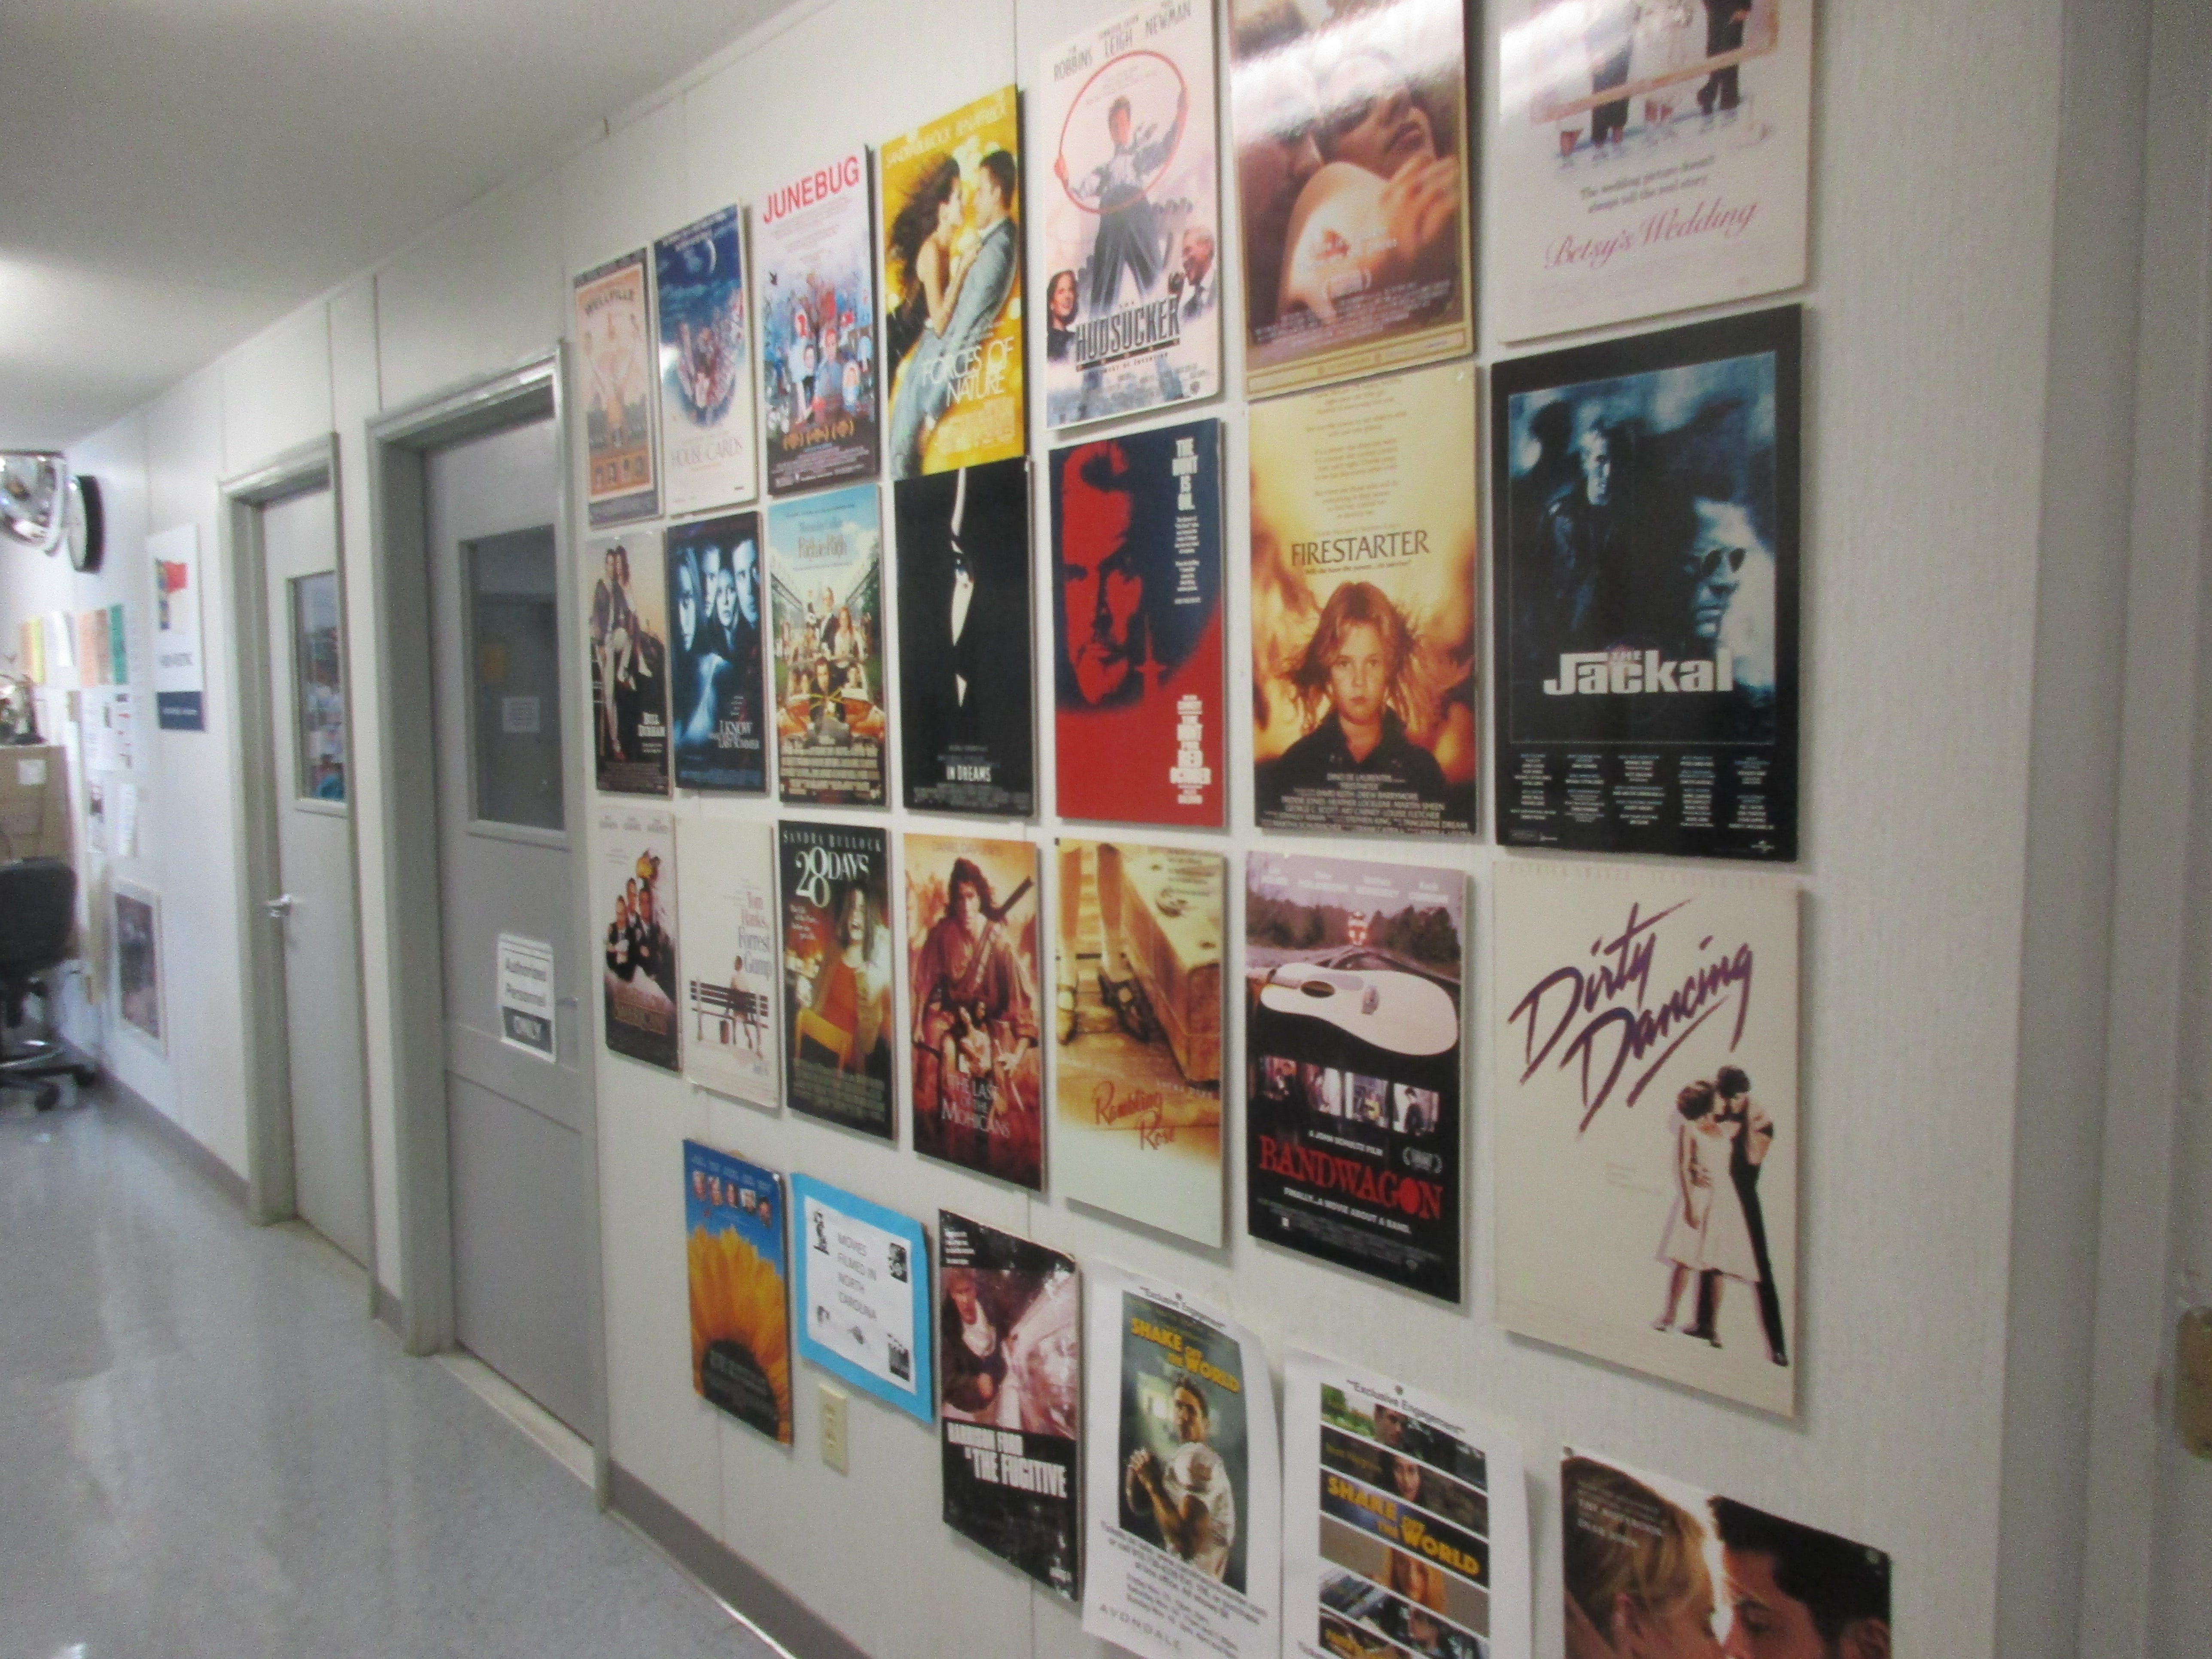 The hall leading to the Visitor Call Center is line with posters advertising the many films made in North Carolina.